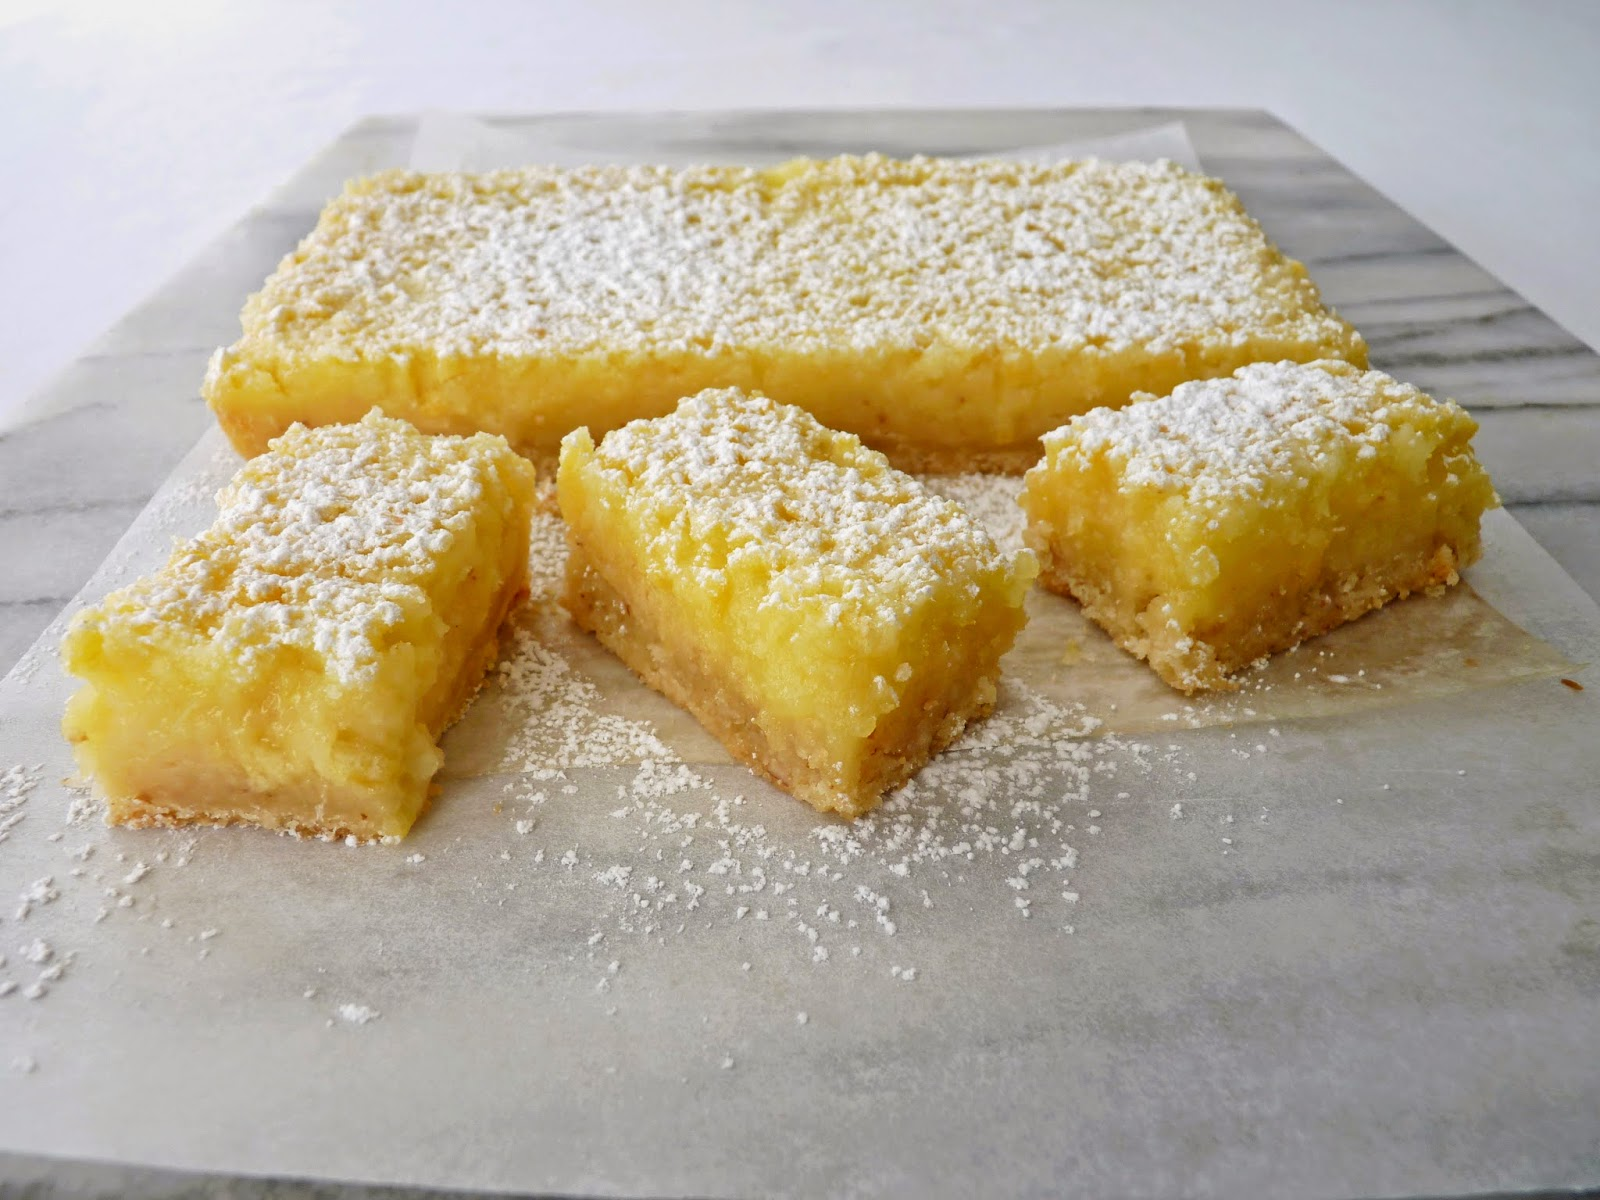 :pastry studio: Whole Lemon Bars